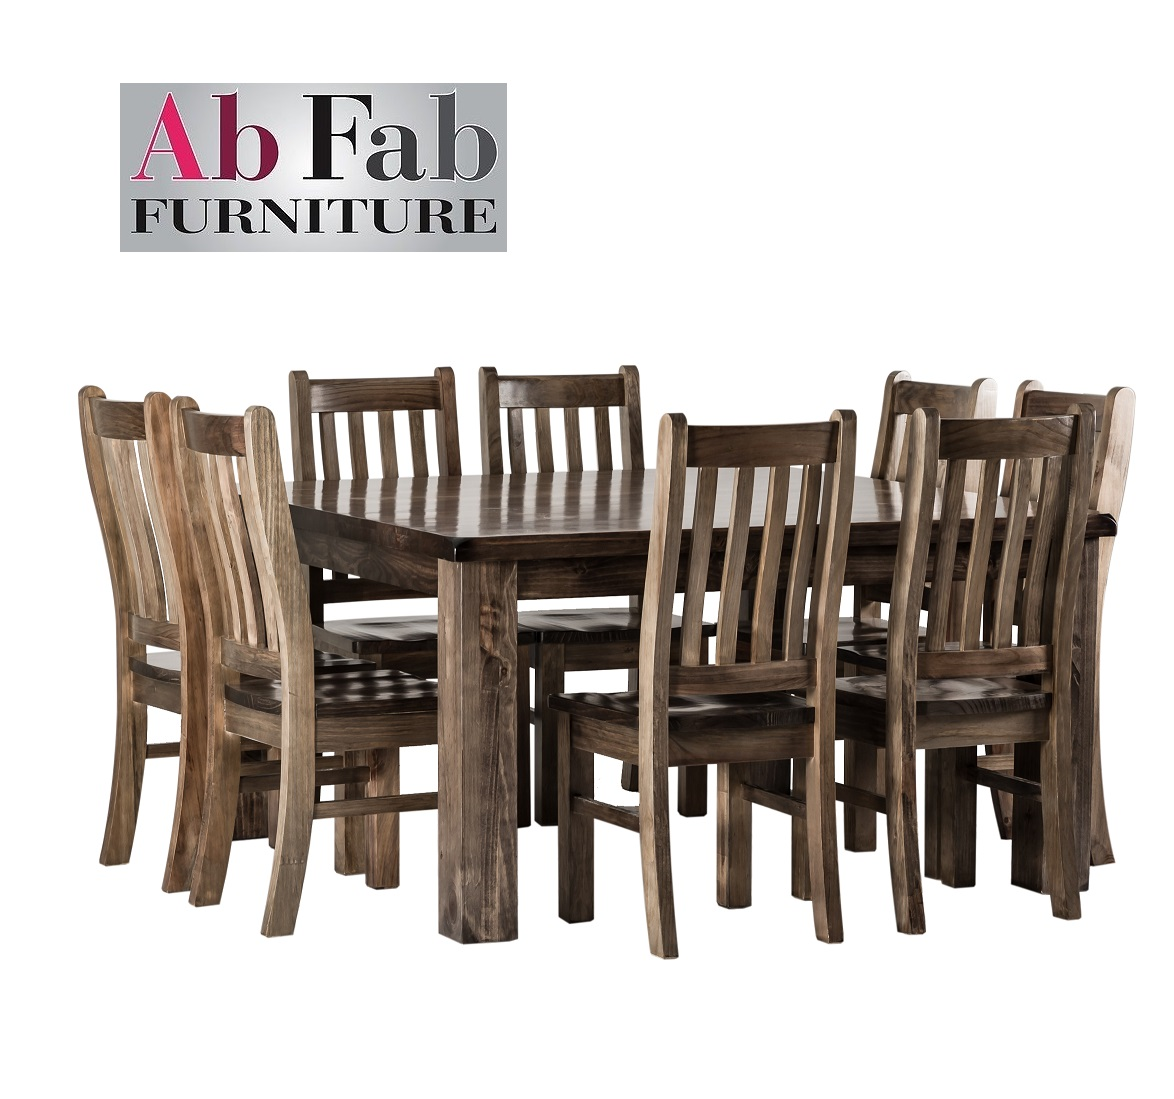 Barossa Square Dining Suite 9 Piece 1 X Table 8 X Chairs 1 5m Solid Timber Ab Fab Furniture Penrith